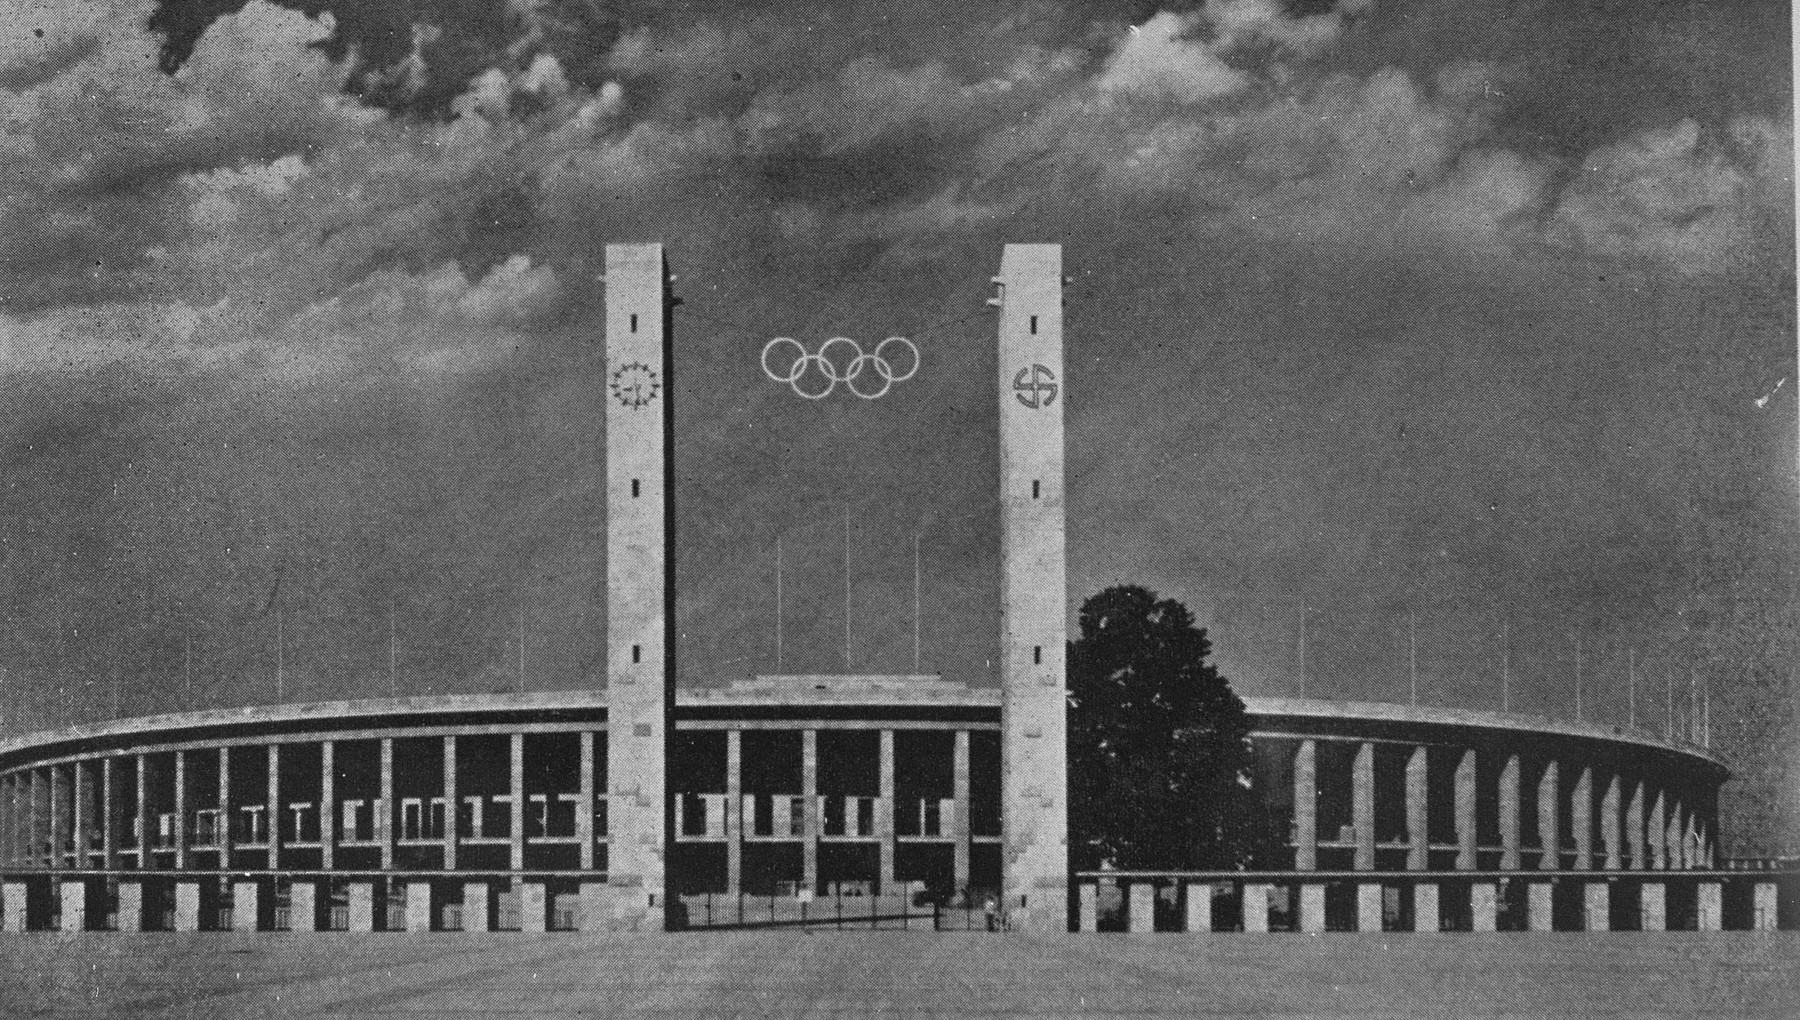 The Olympic stadium in Berlin, site of the 11th Olympic Games.